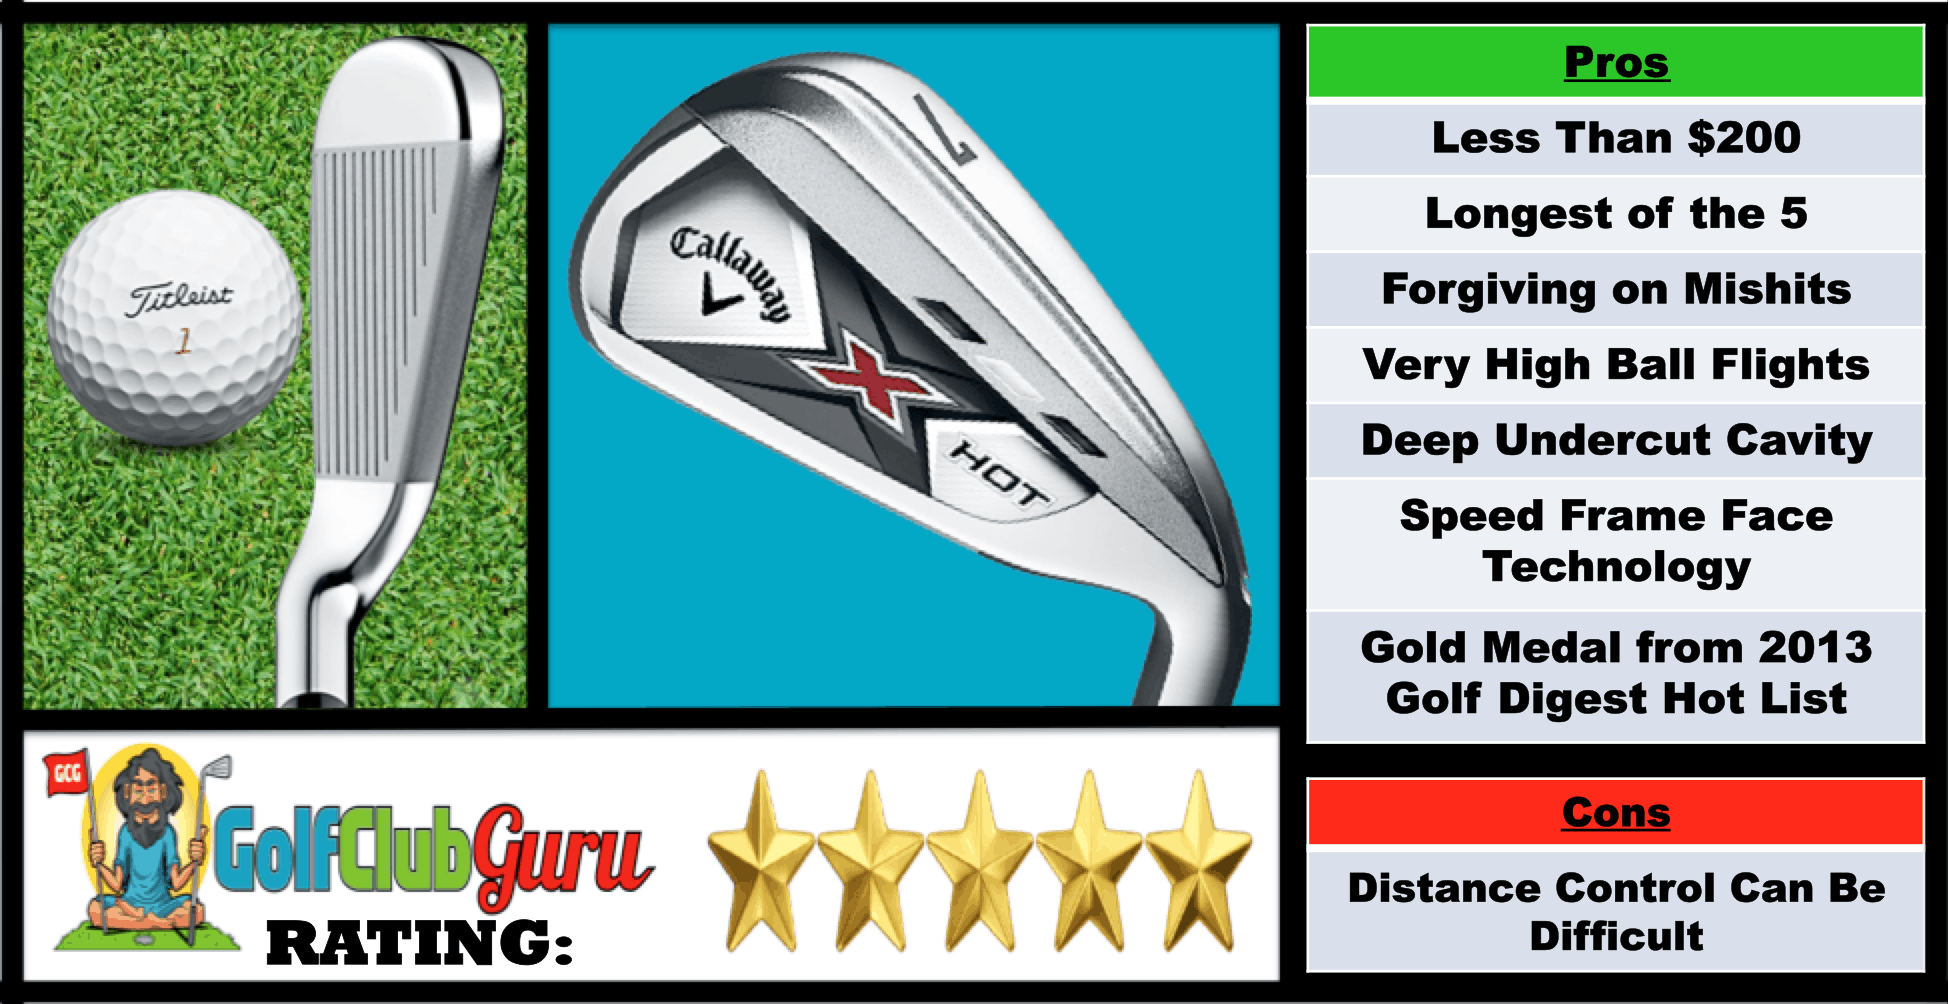 Photos, Review, Ranking, Pros, and Cons of the Budget Callaway X Hot Irons